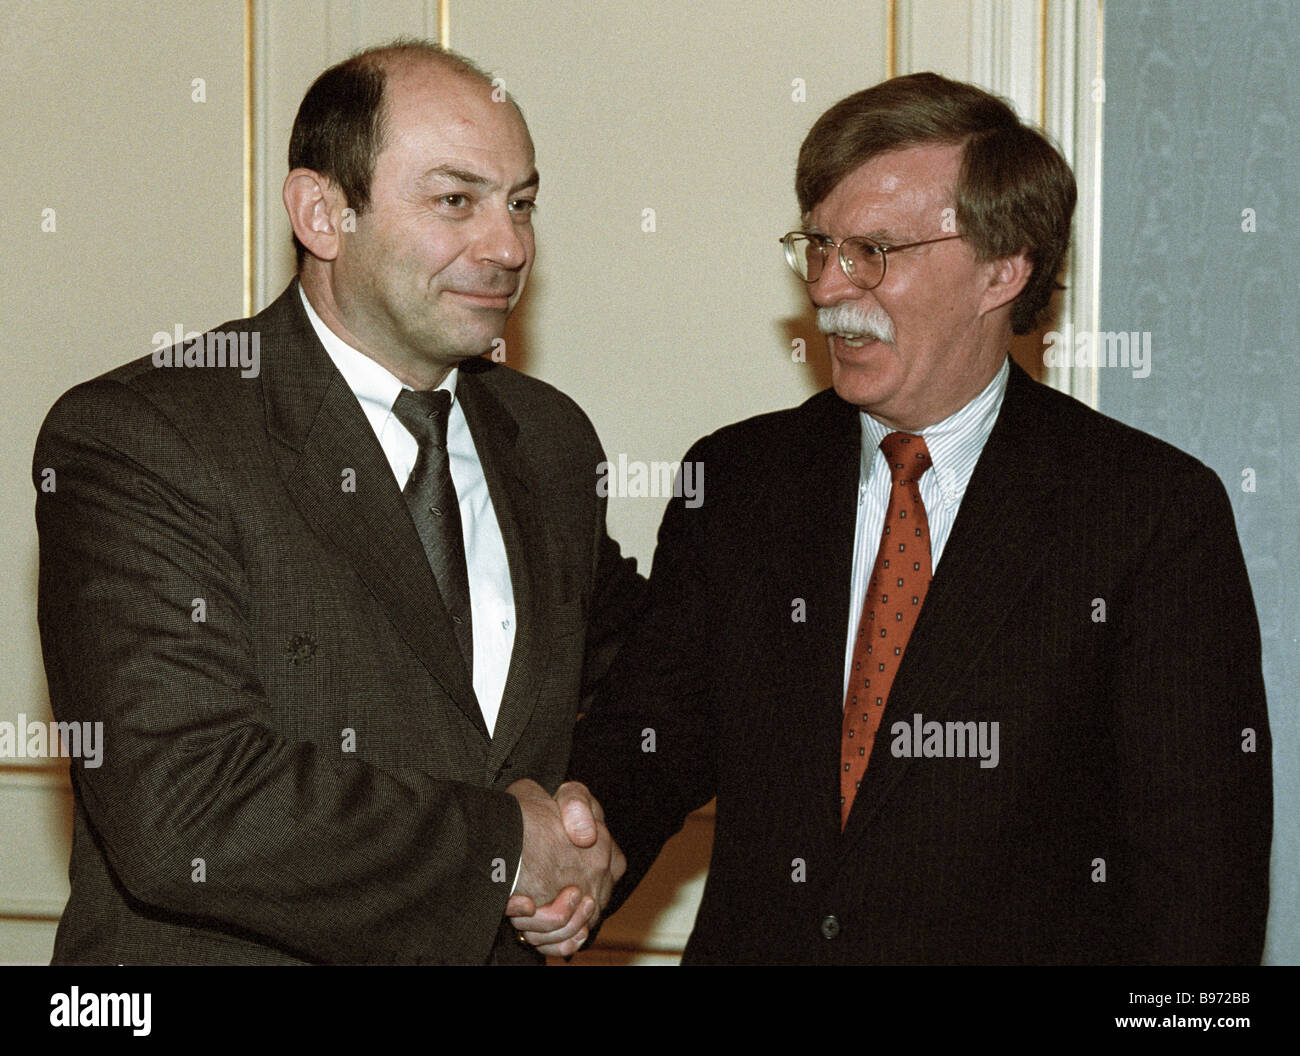 Vladimir Rushailo secretary of the Security Council of Russia left and John R Bolton US Undersecretary of State - Stock Image